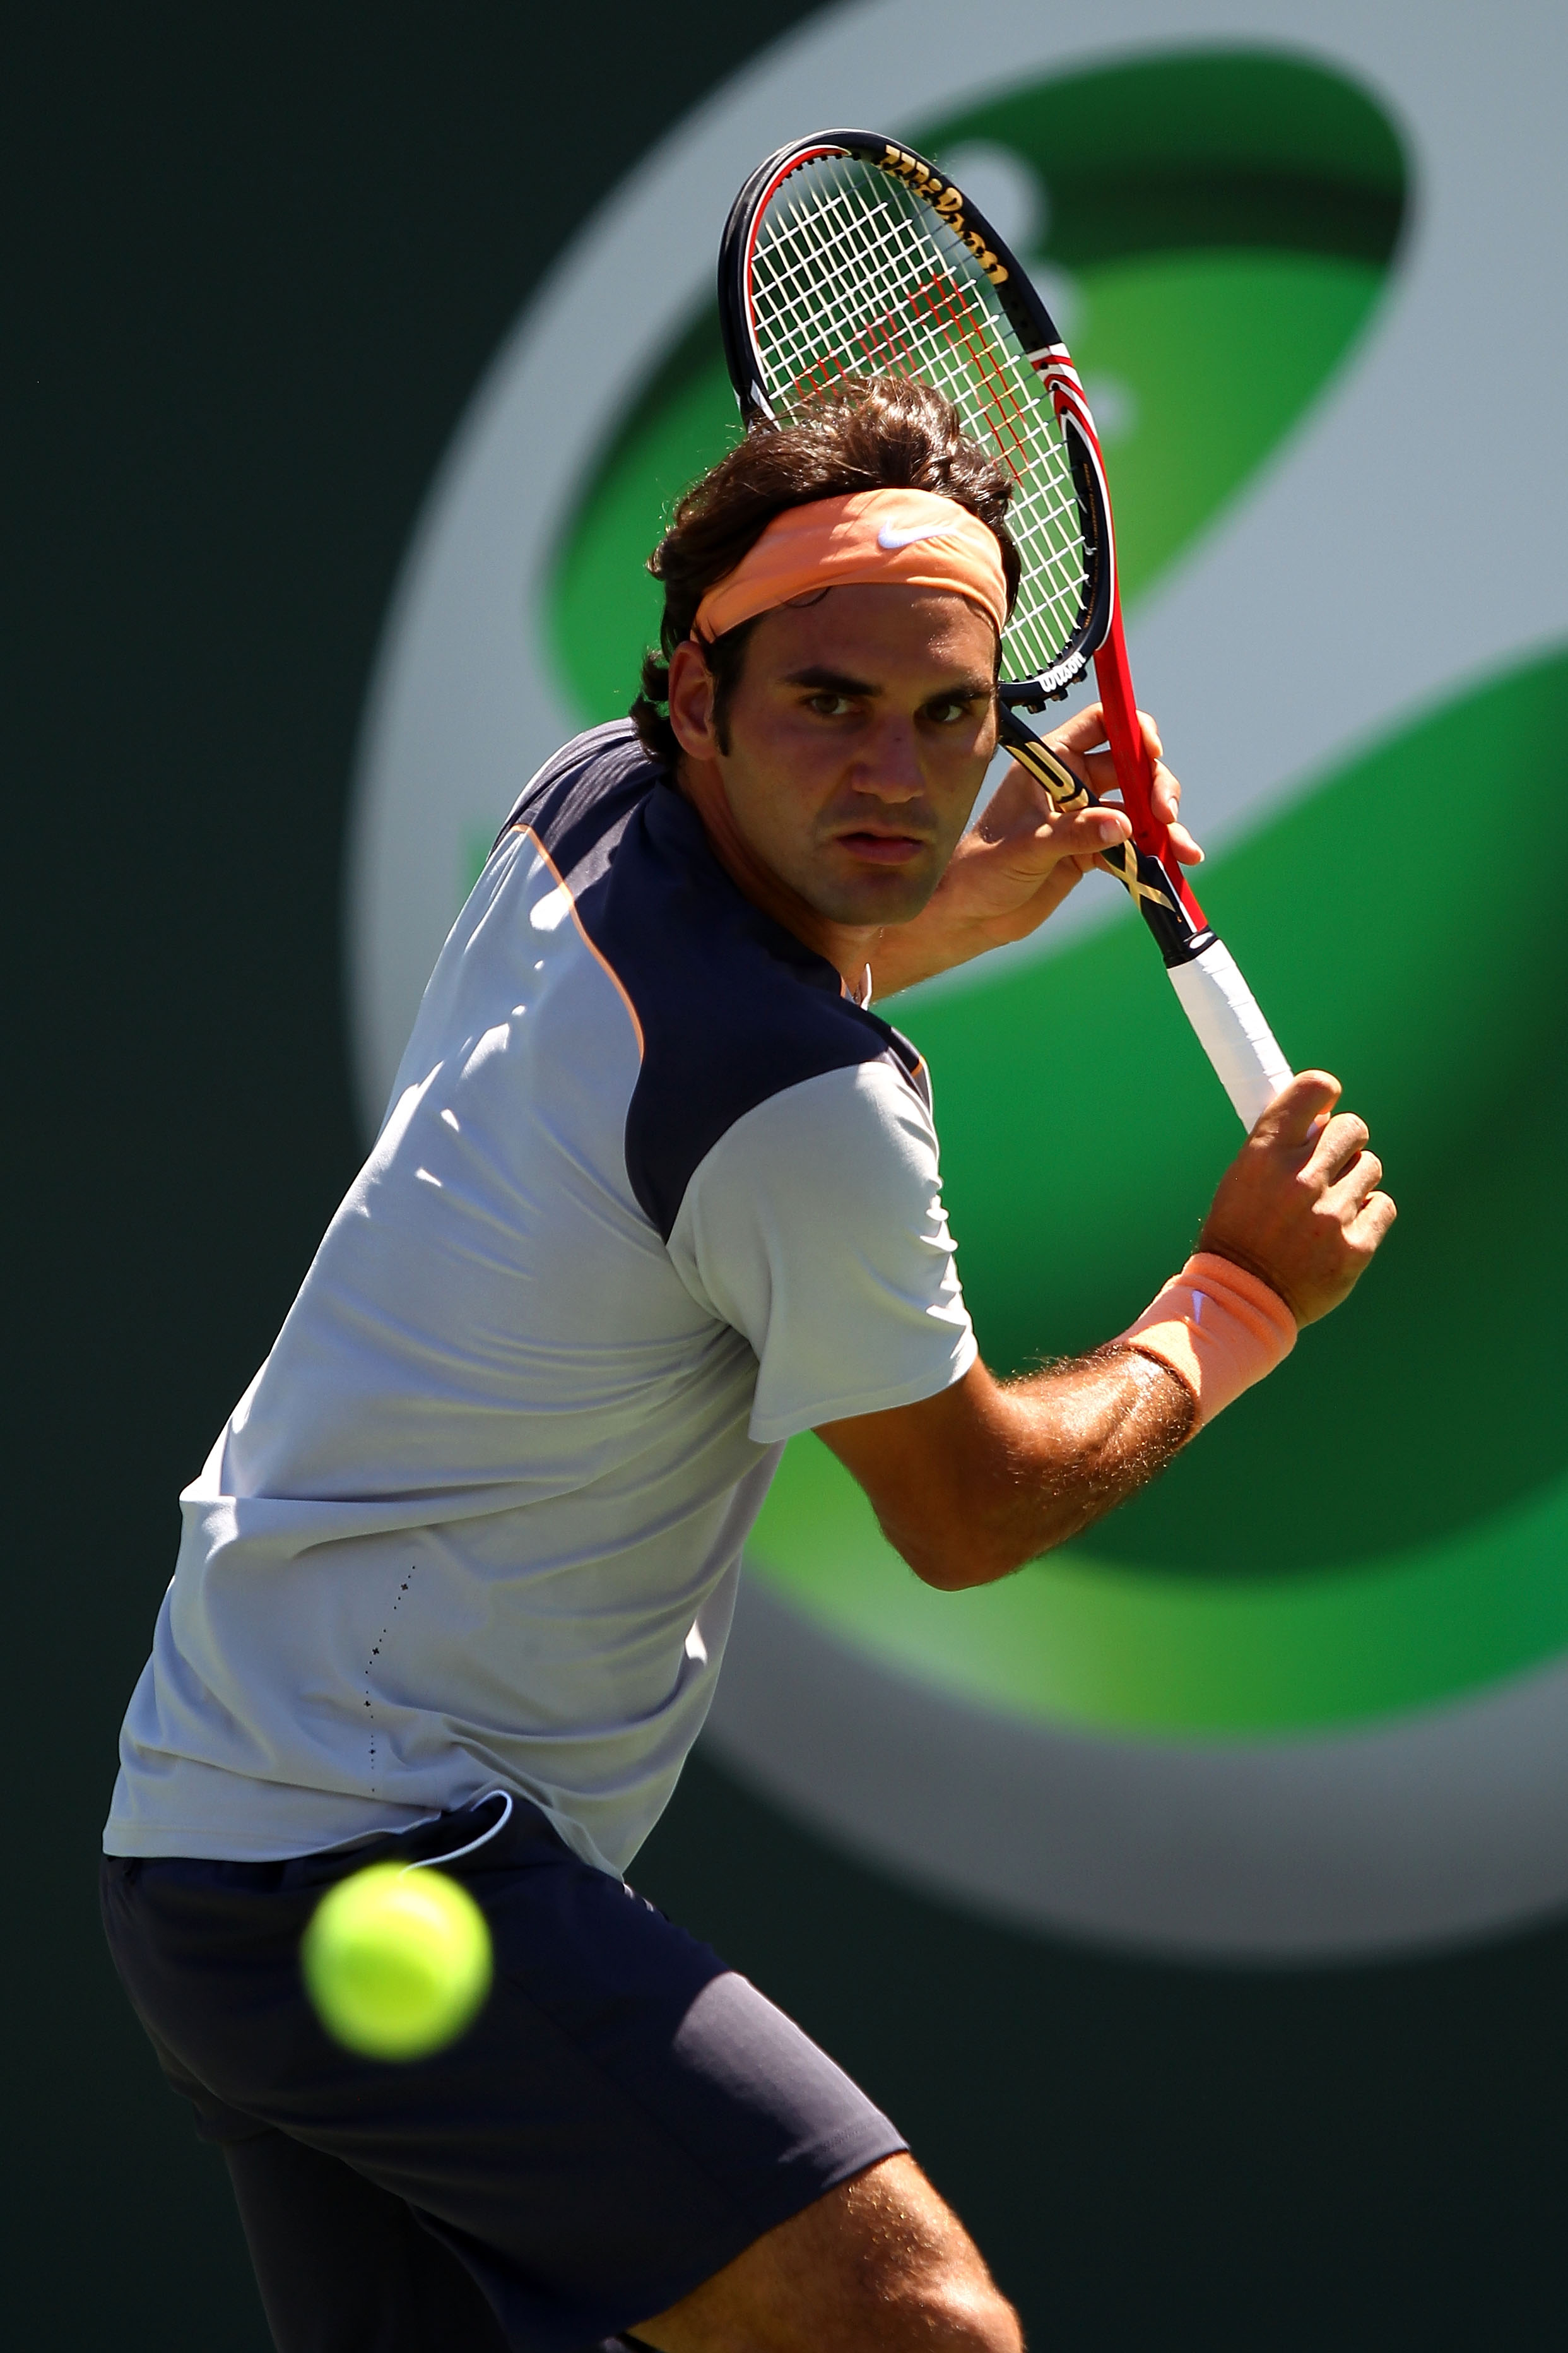 KEY BISCAYNE, FL - MARCH 26:  Roger Federer of Switzerland returns against Radek Stepanek of Czech Republic during the Sony Ericsson Open at Crandon Park Tennis Center on March 26, 2011 in Key Biscayne, Florida.  (Photo by Clive Brunskill/Getty Images)